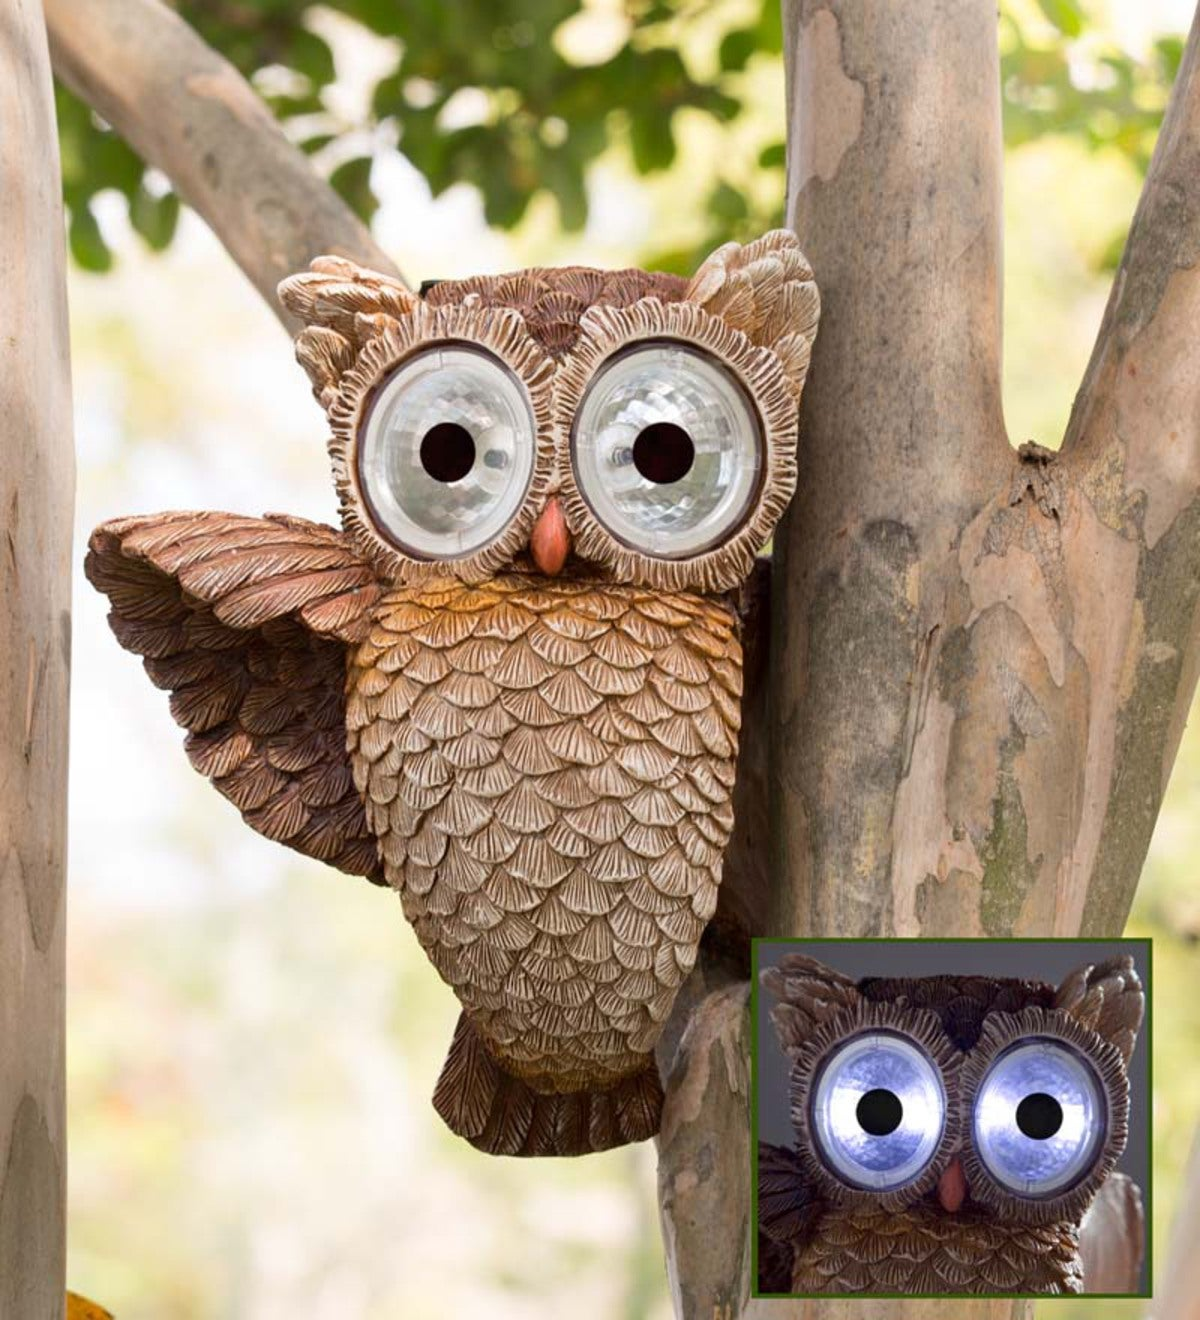 Glowing Owl Eyes Garden Sculpture | Wind and Weather